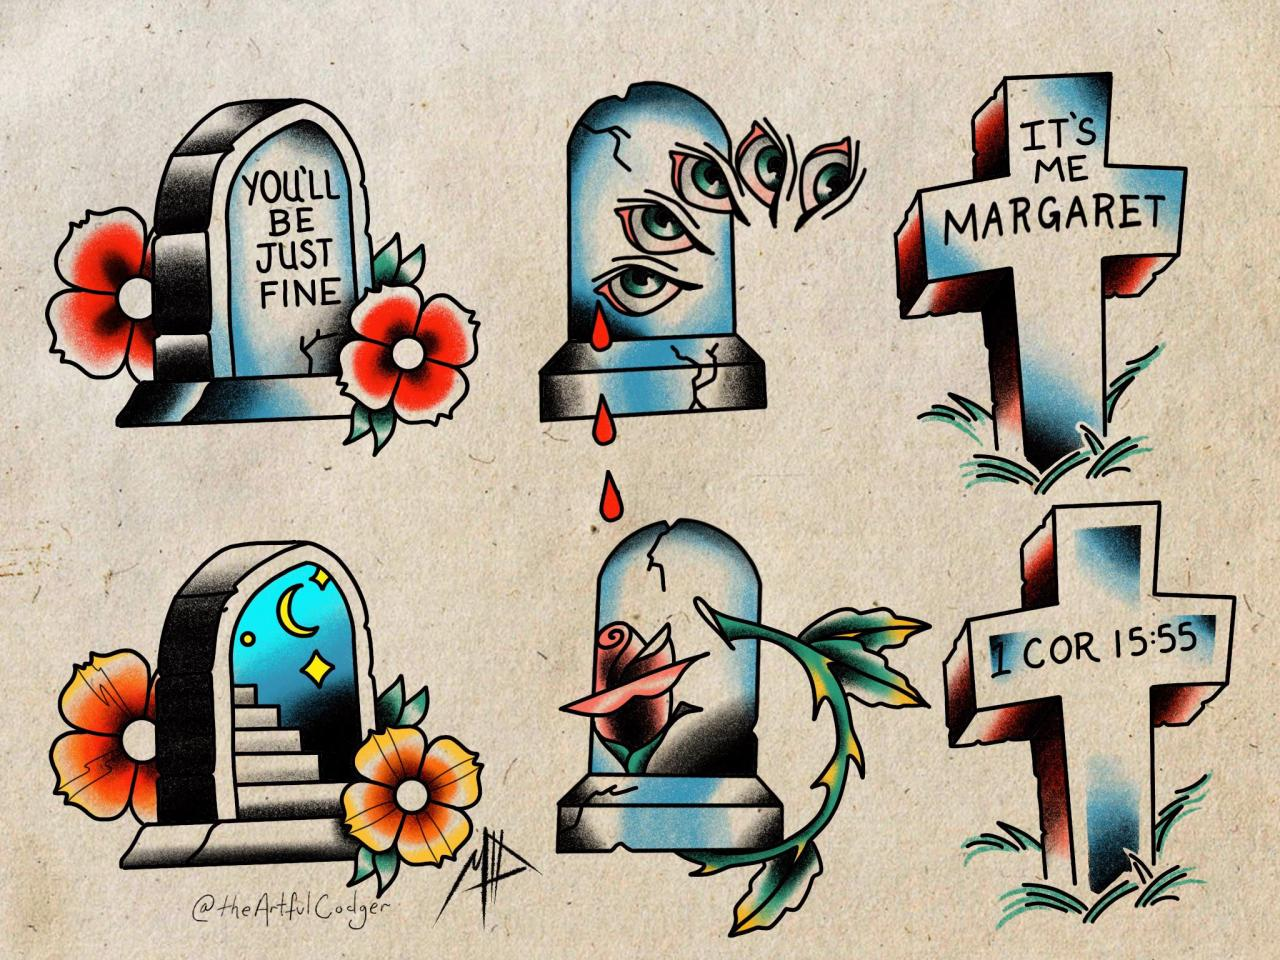 Some (mostly) trad gravestones I drew up yesterday. Getting to tattoo the you'll be fine next week! Check out more art and tattooing on IG @theartfulcodger